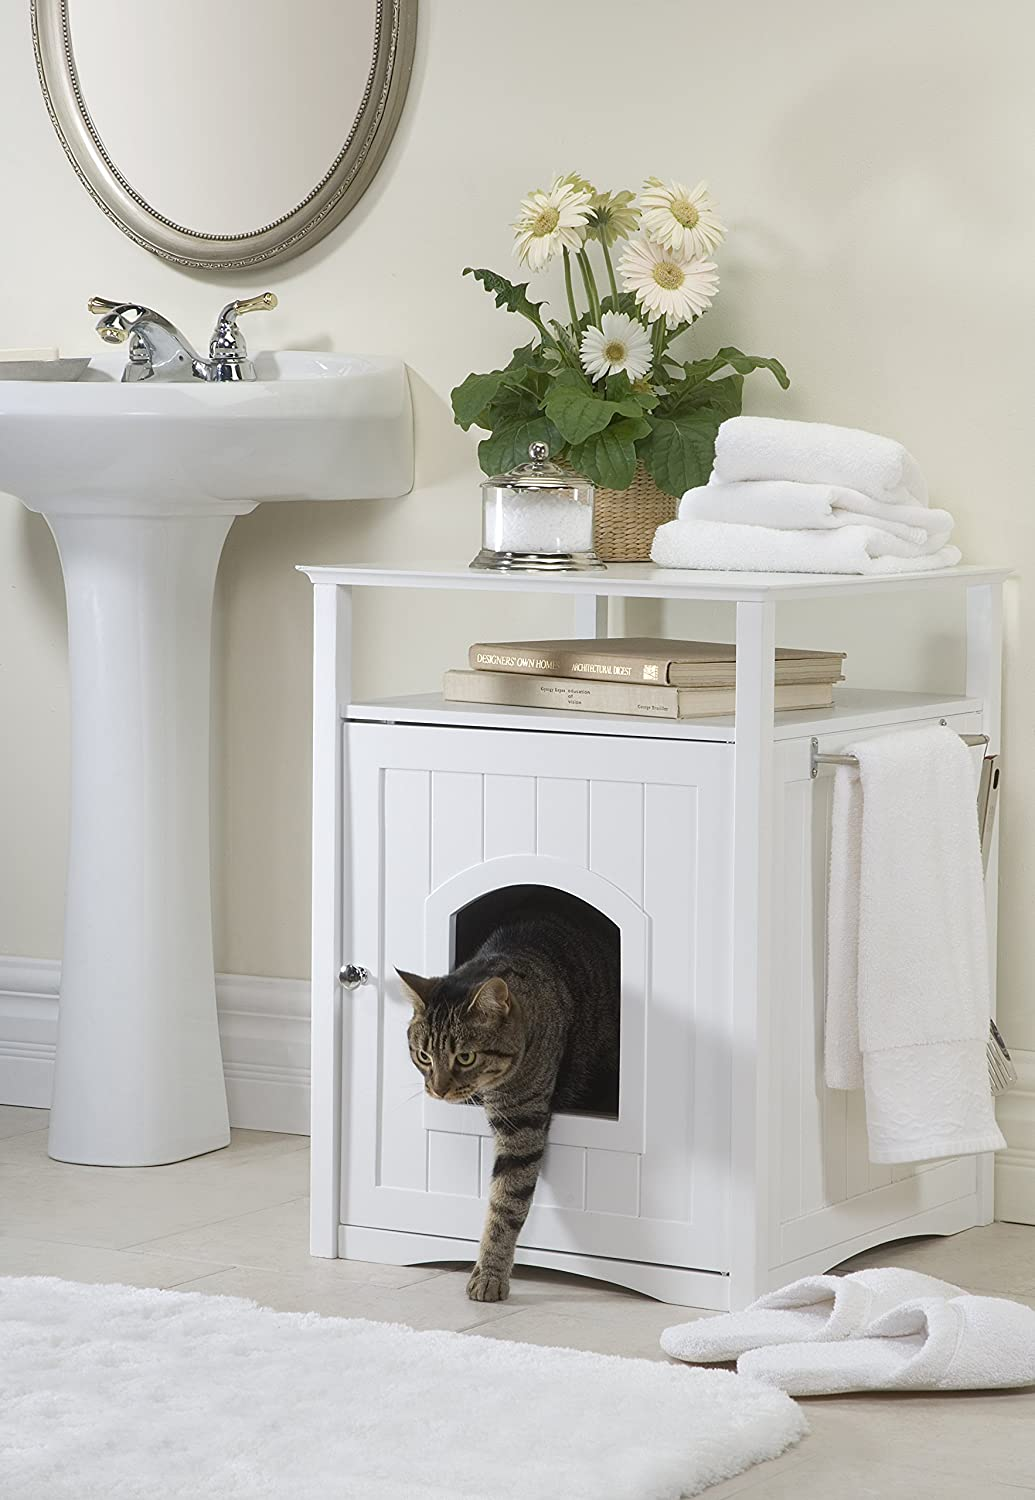 amazoncom merry pet cat washroom night stand pet house cat houses and condos pet supplies cat litter box covers